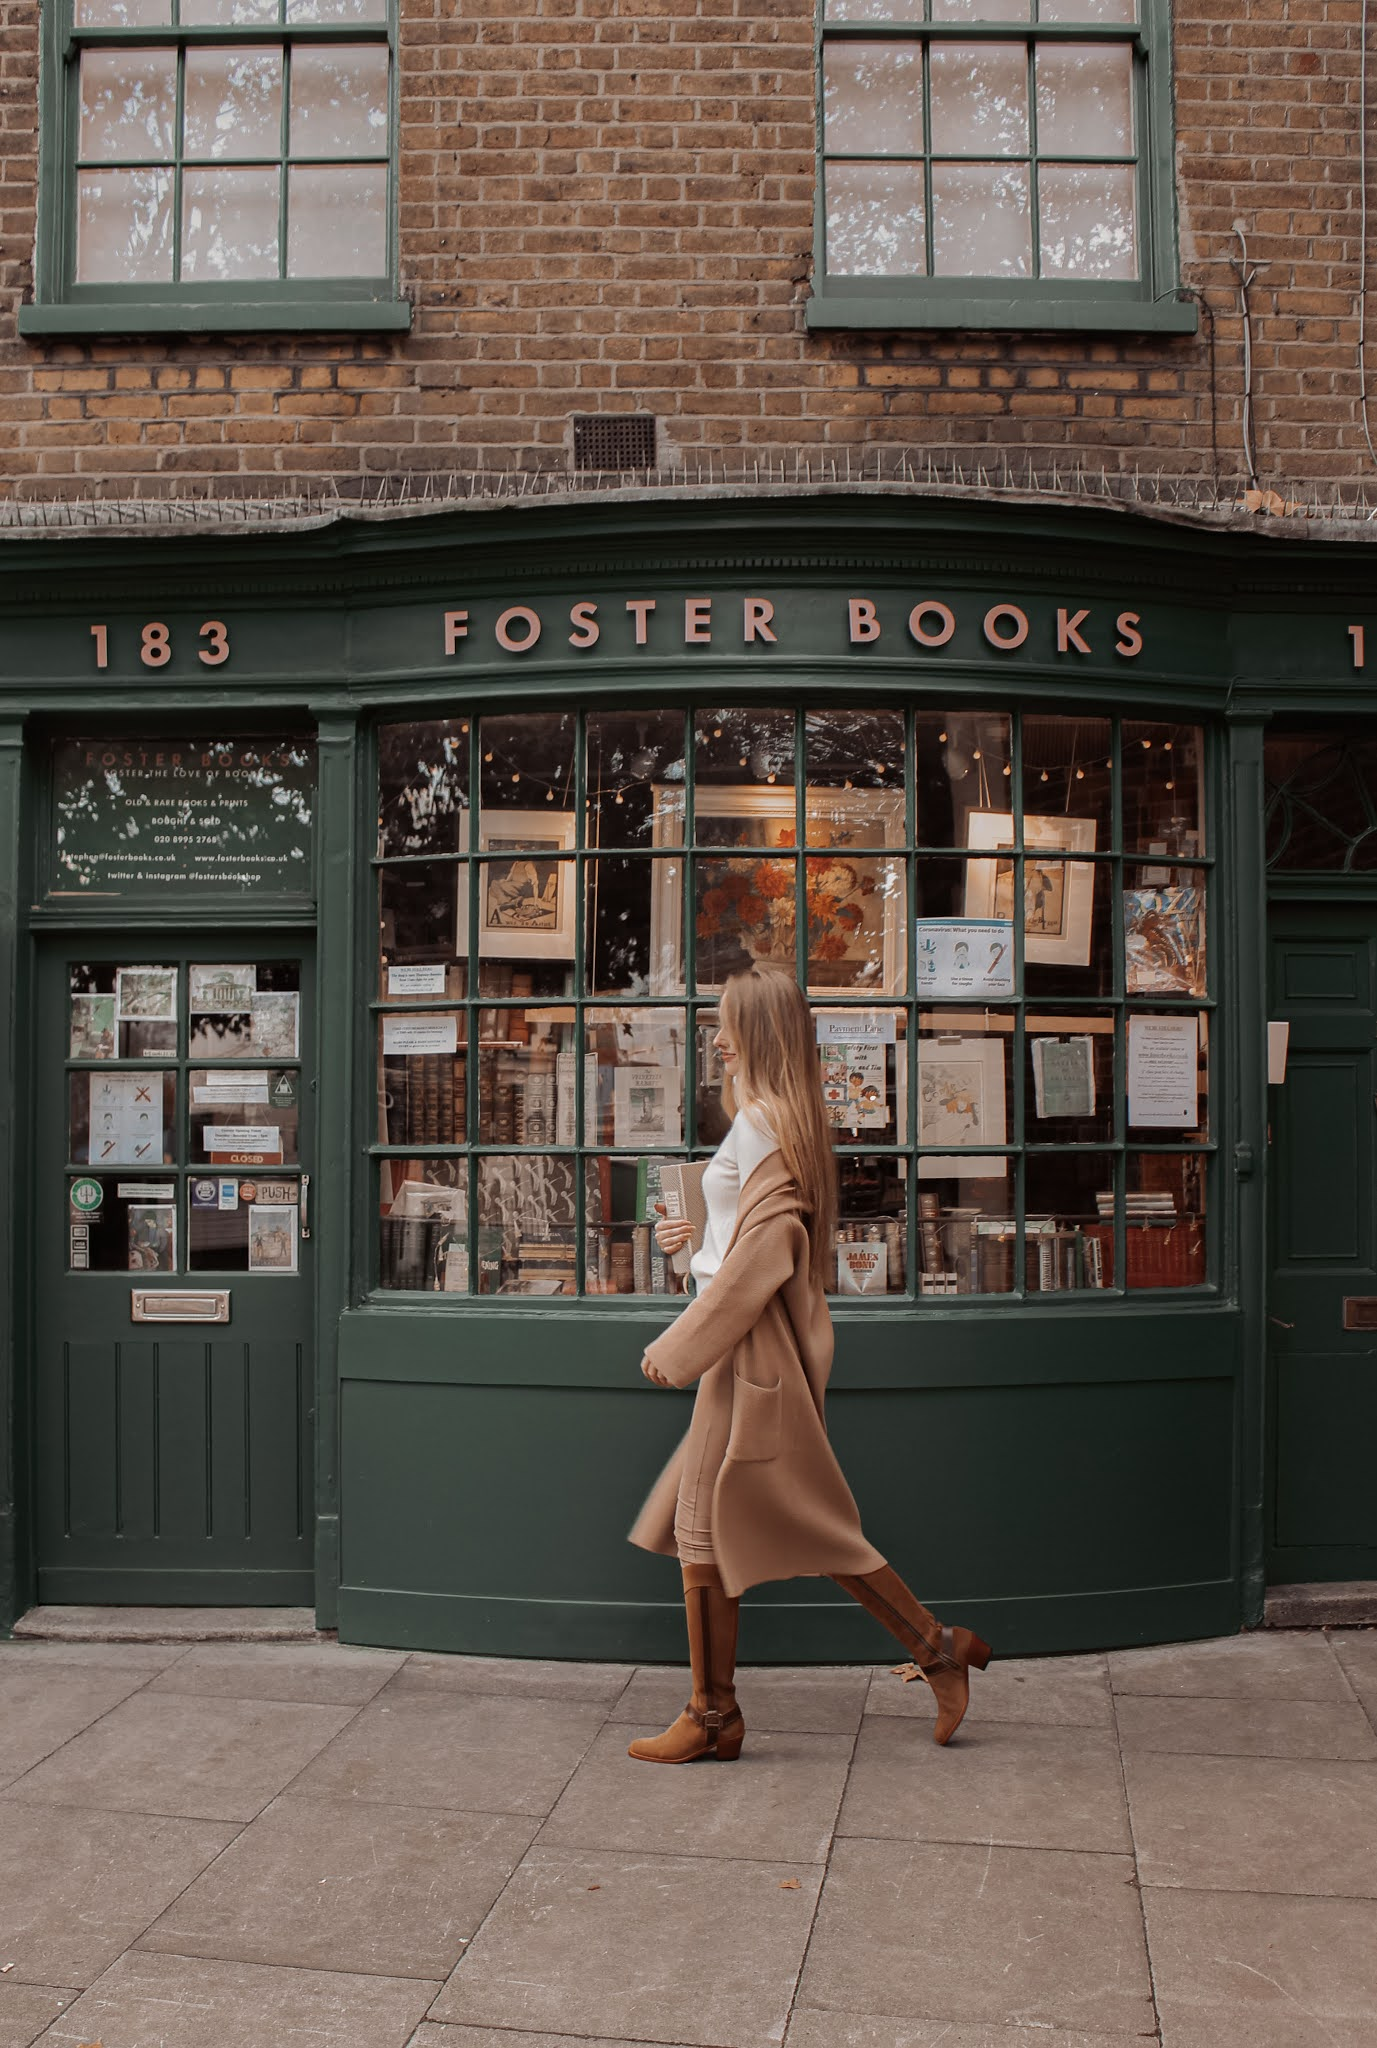 Foster Books Chiswick Shop London